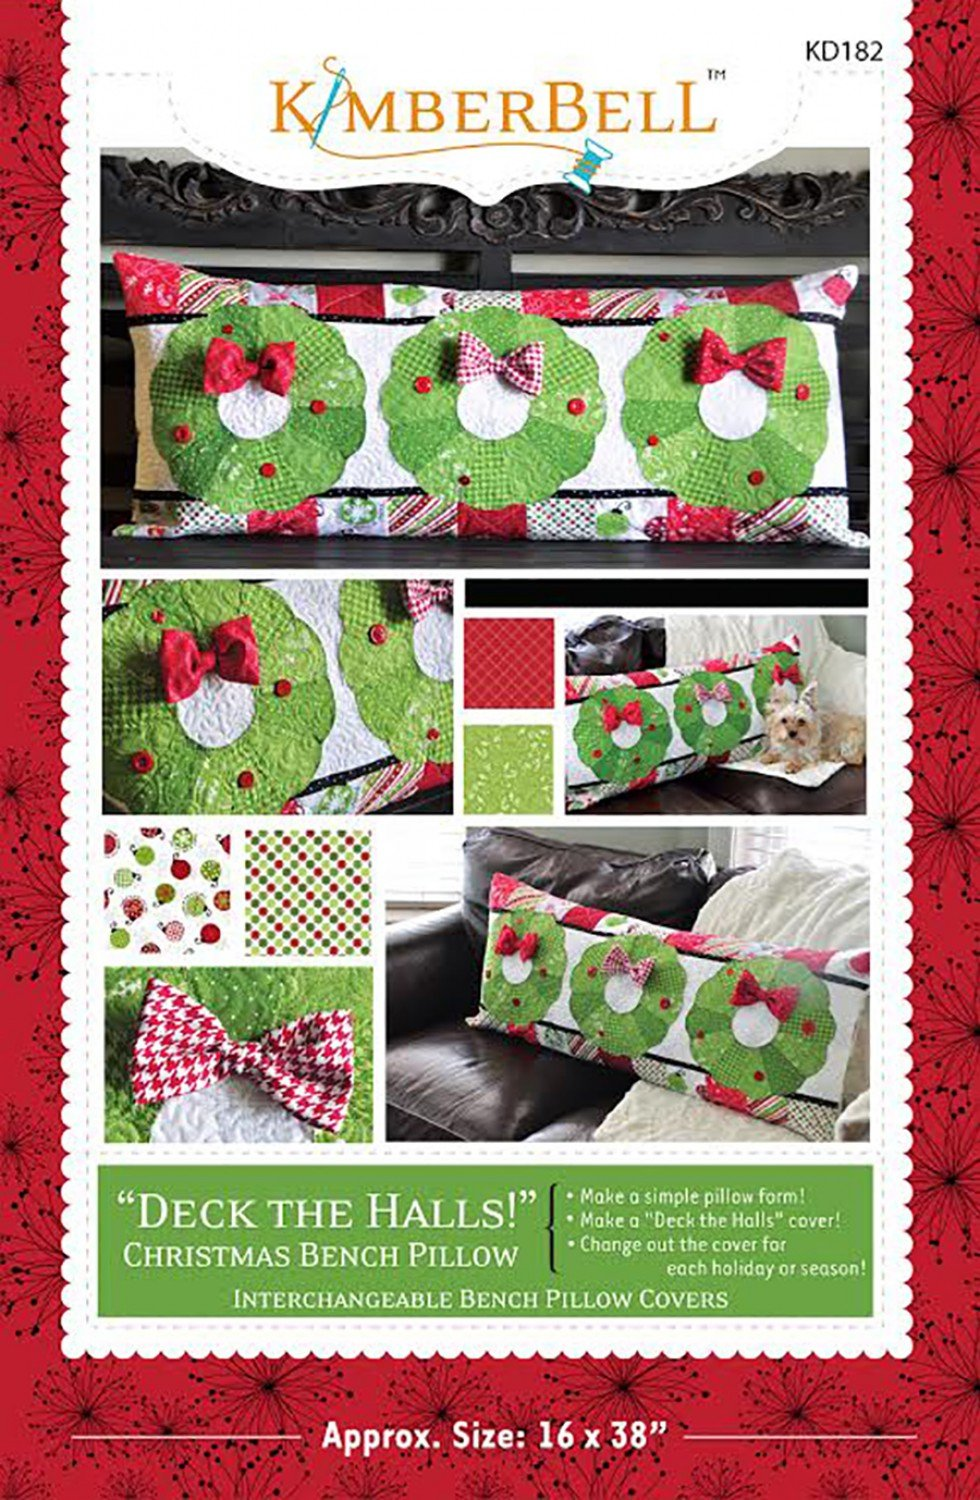 Deck the Halls Bench Pillow by Kimberbell